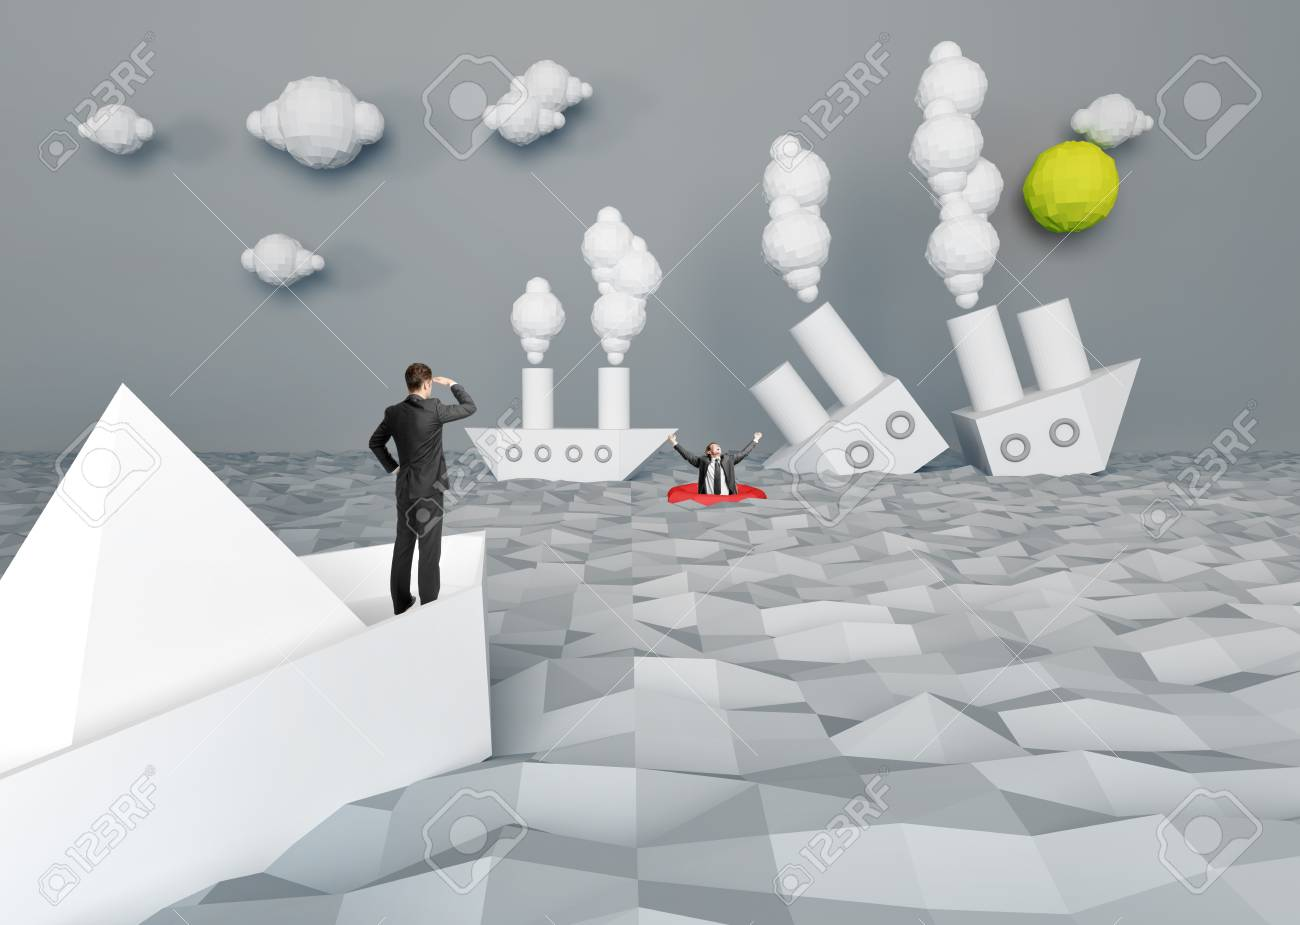 abstract paper battle ship and people Stock Photo - 20829914